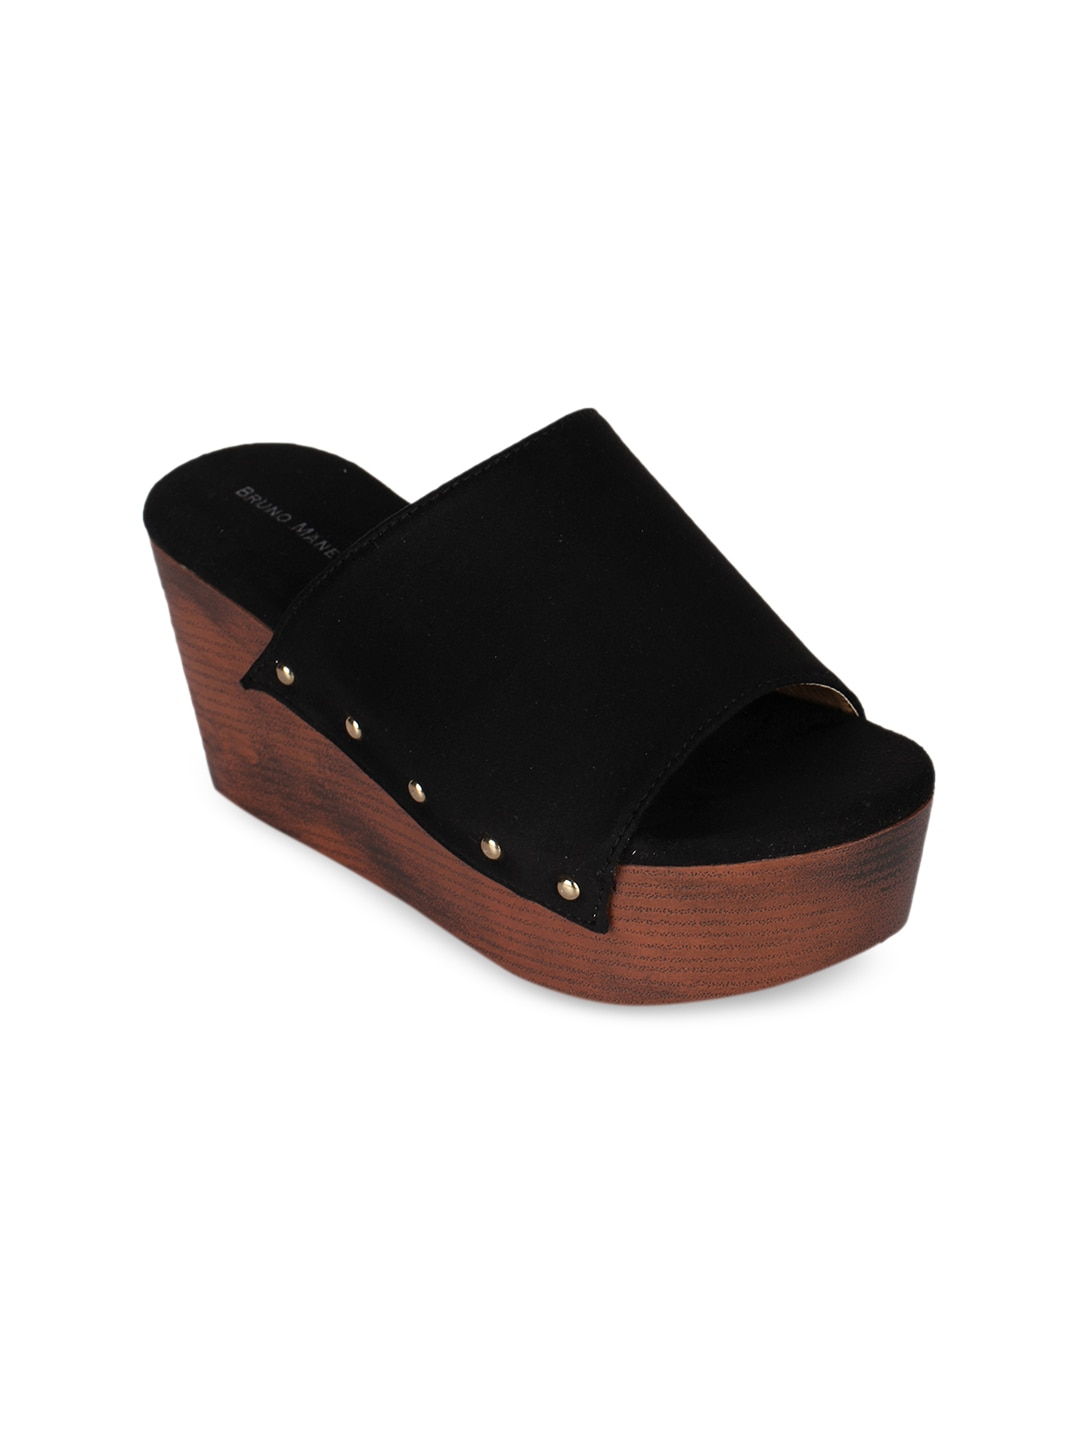 d9a7d8eb5 Bruno Manetti - Buy Bruno Manetti Footwear Online in India